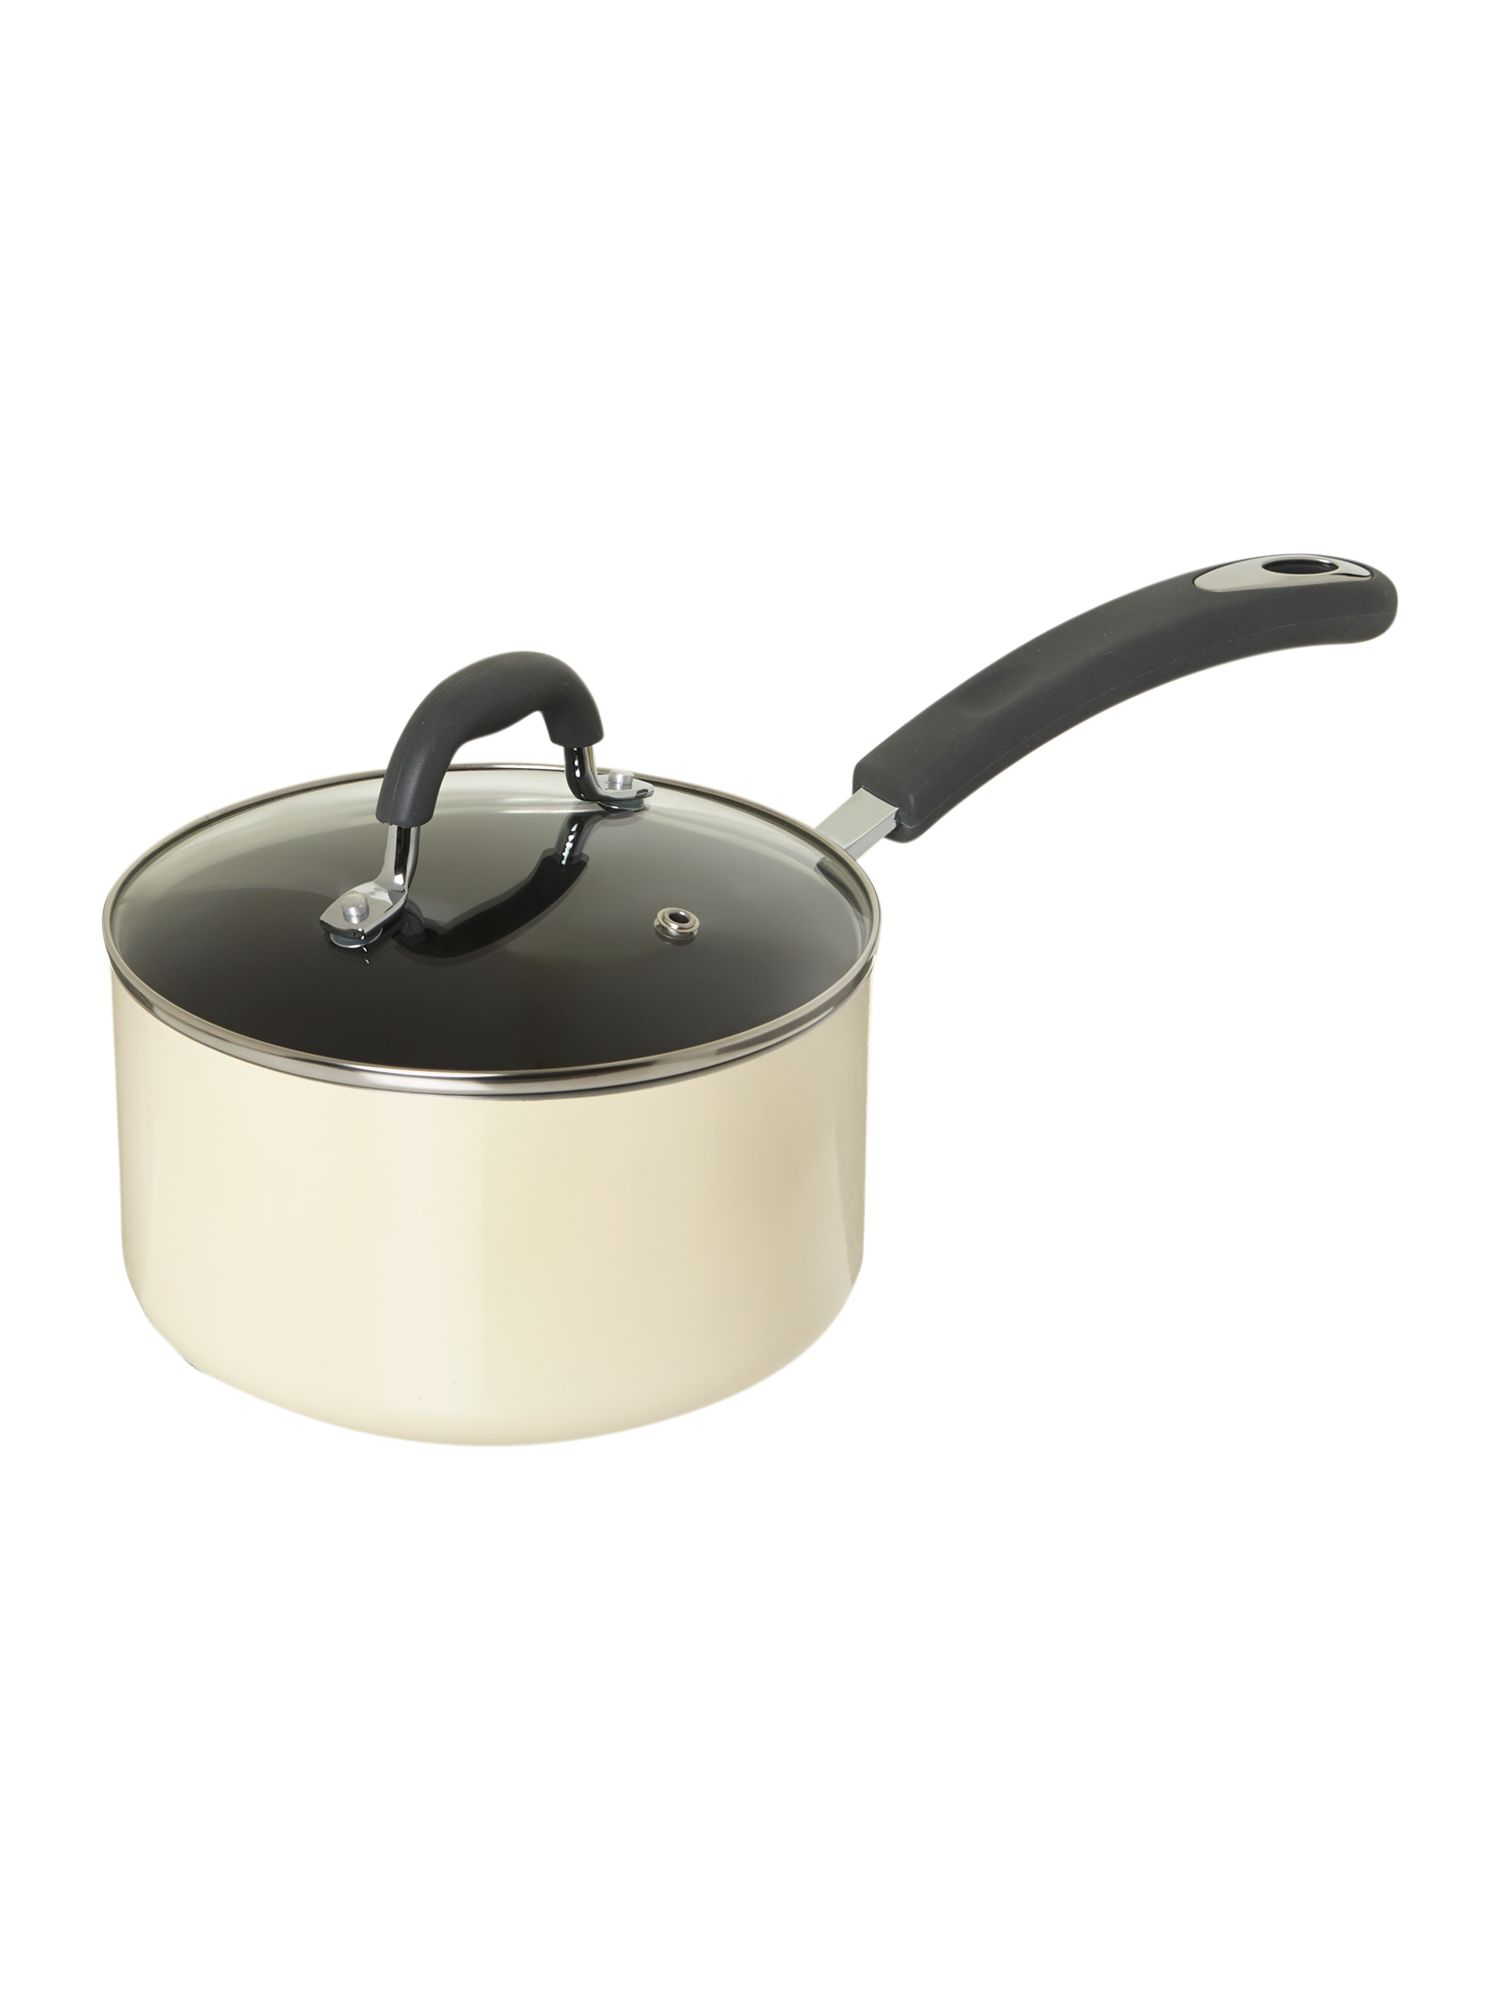 Cream Principle saucepan, 18cm